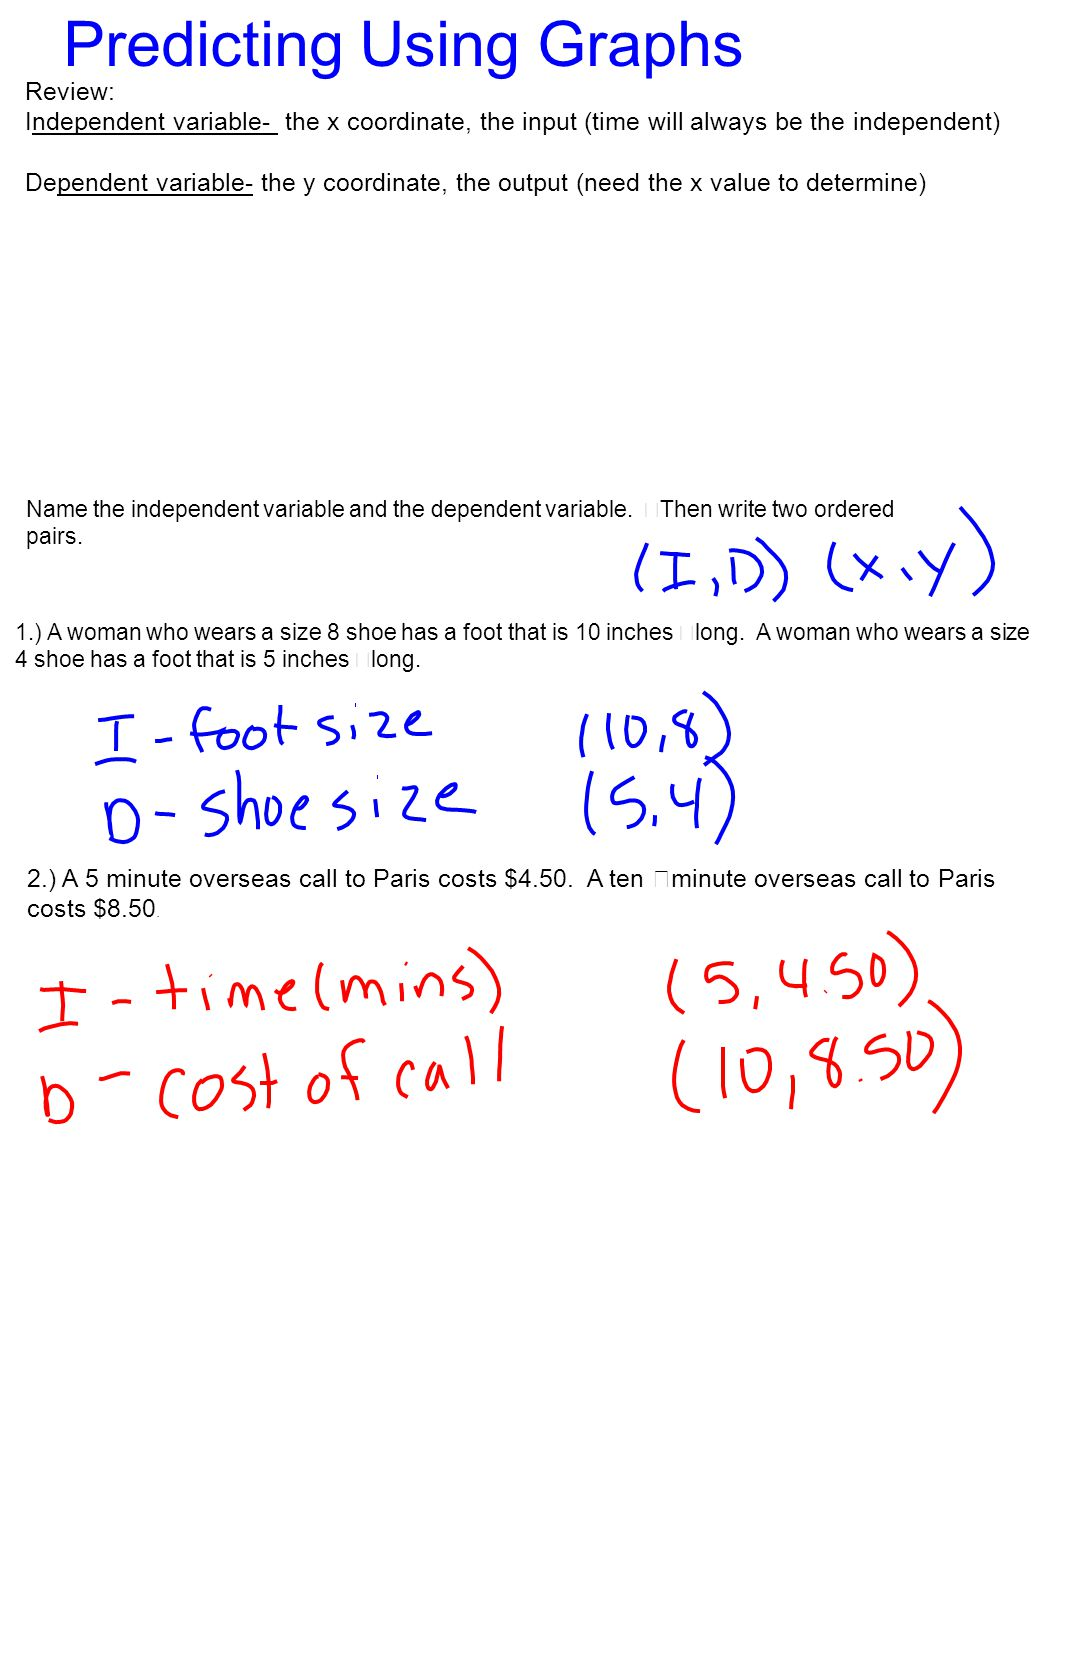 Review: Independent variable- the x coordinate, the input (time will always be the independent) Dependent variable- the y coordinate, the output (need